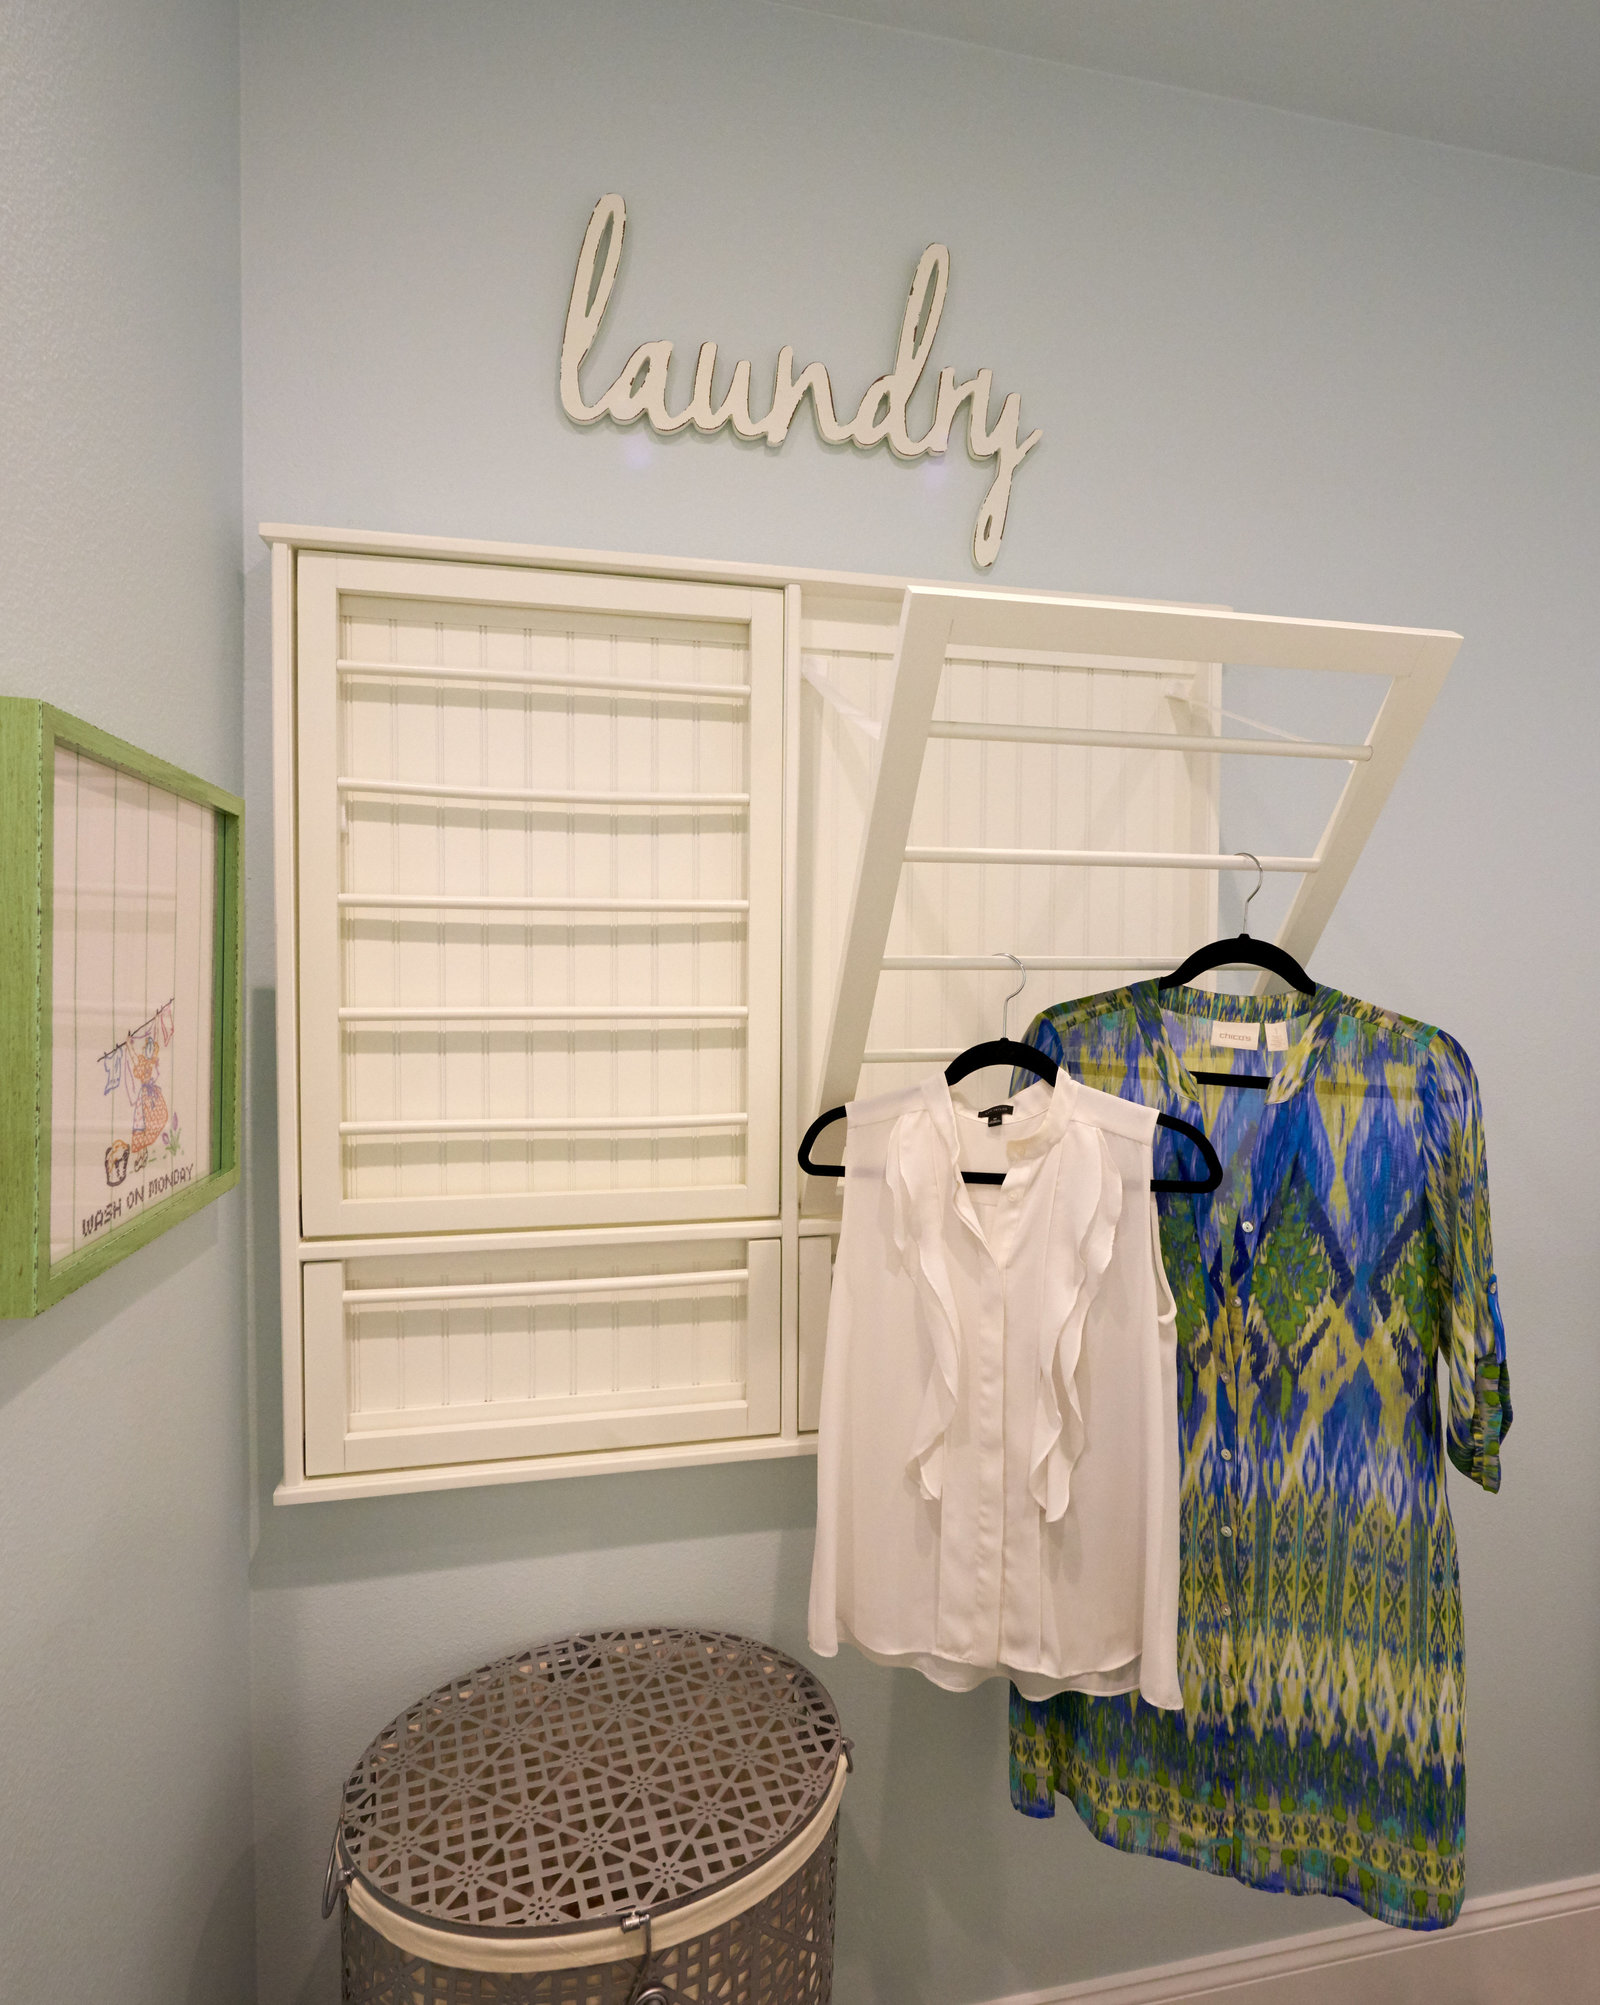 Beach House Laundry Interior Design